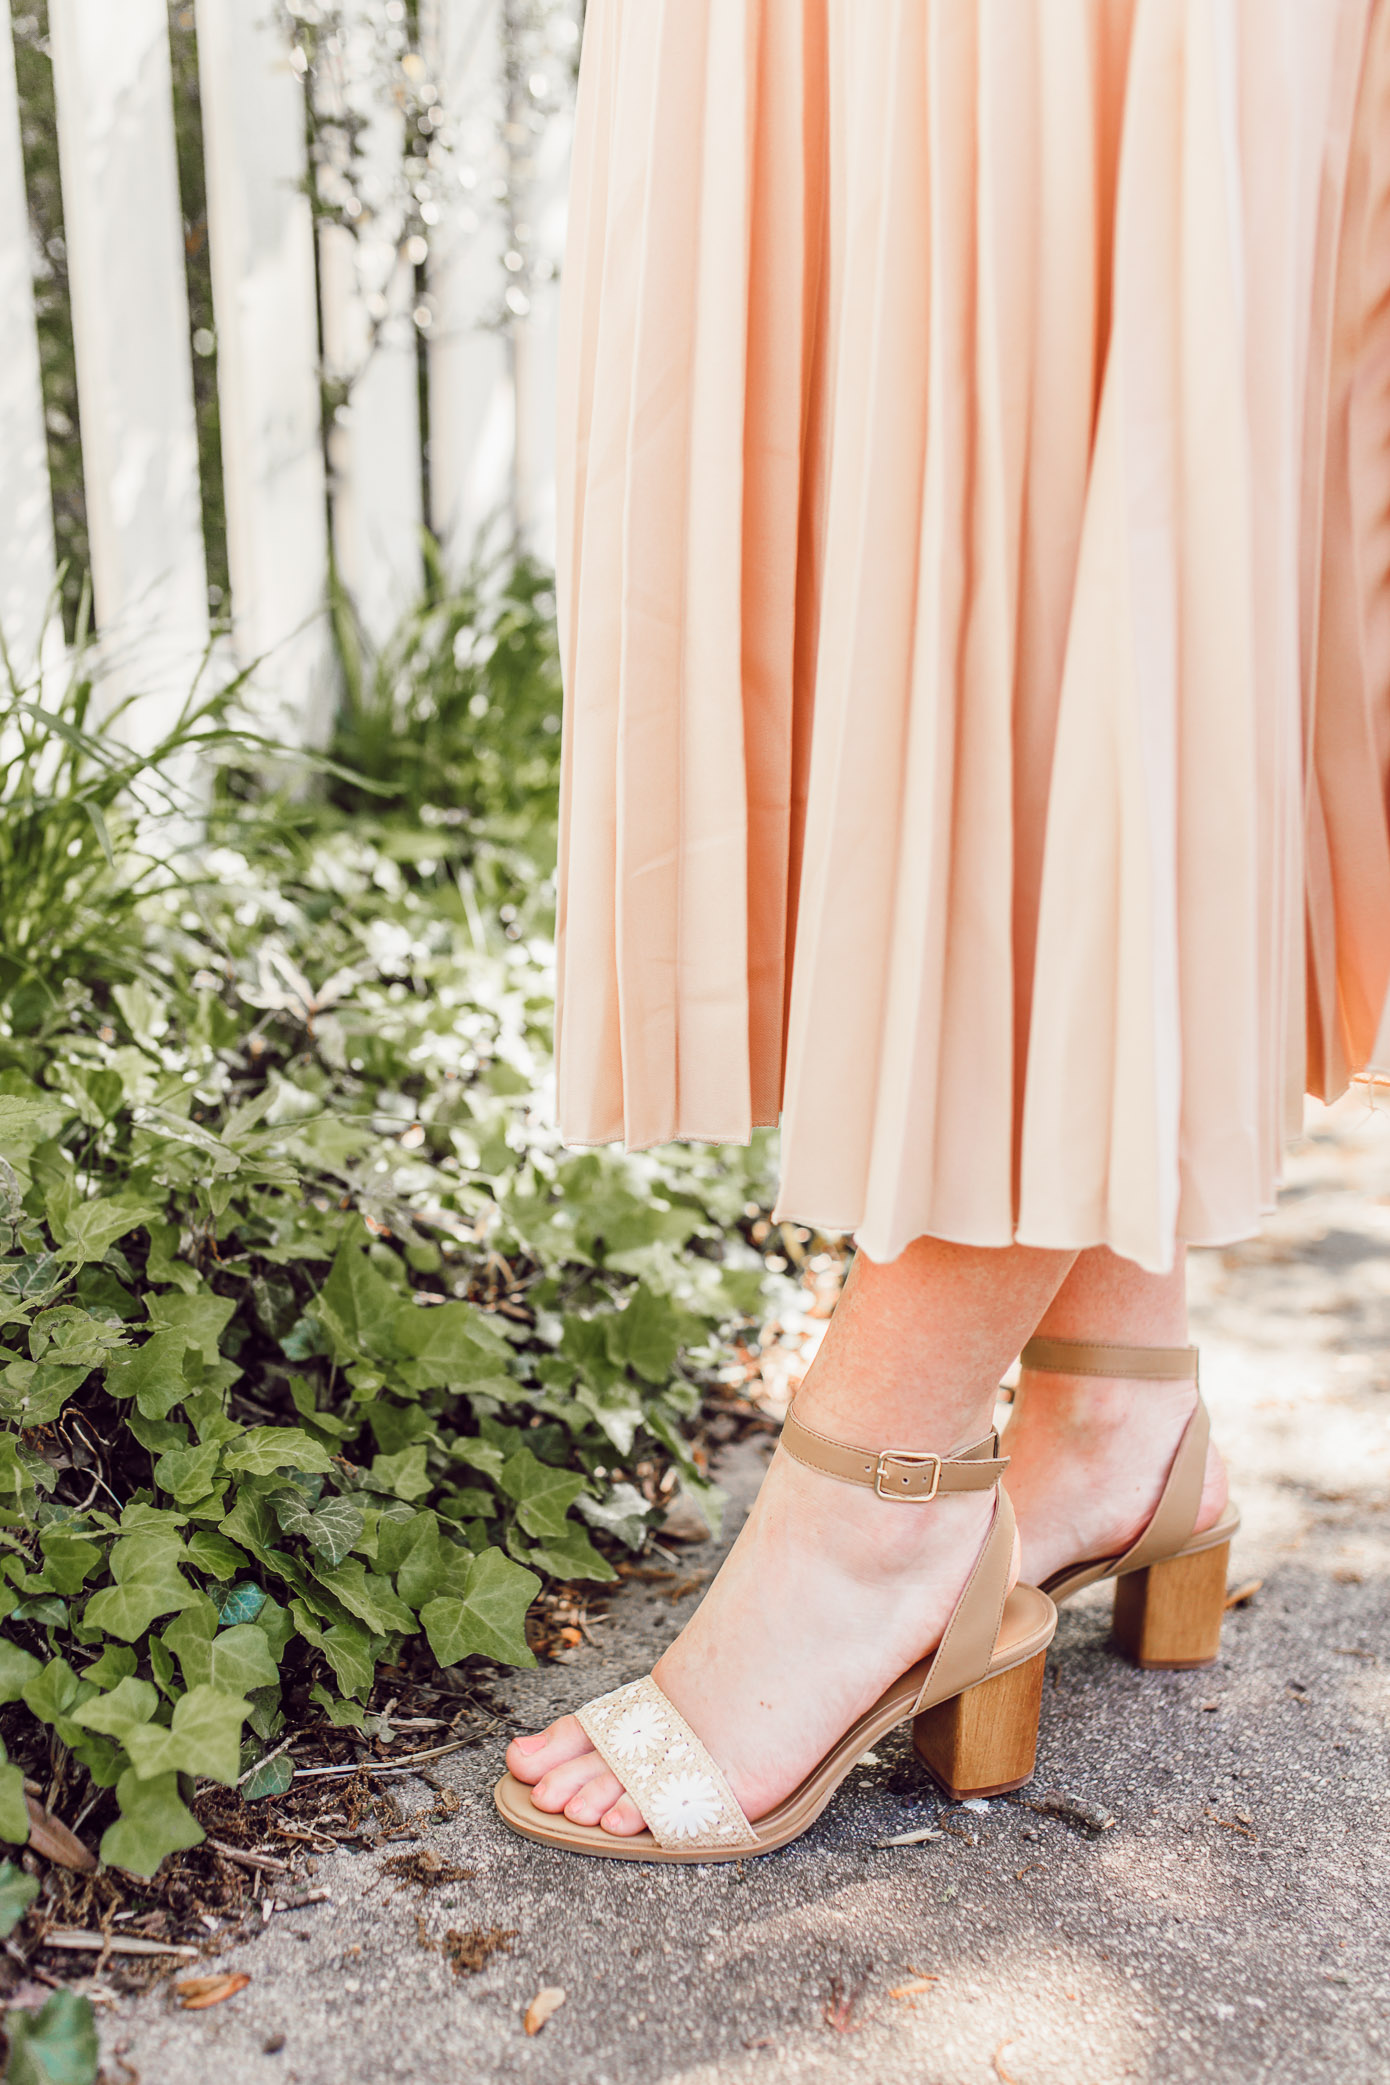 The must-have high heel sandals to shop for spring and summer with a neutral outfit   ft. Chicwish, Jack Rogers, Lisi Lerch   Louella Reese